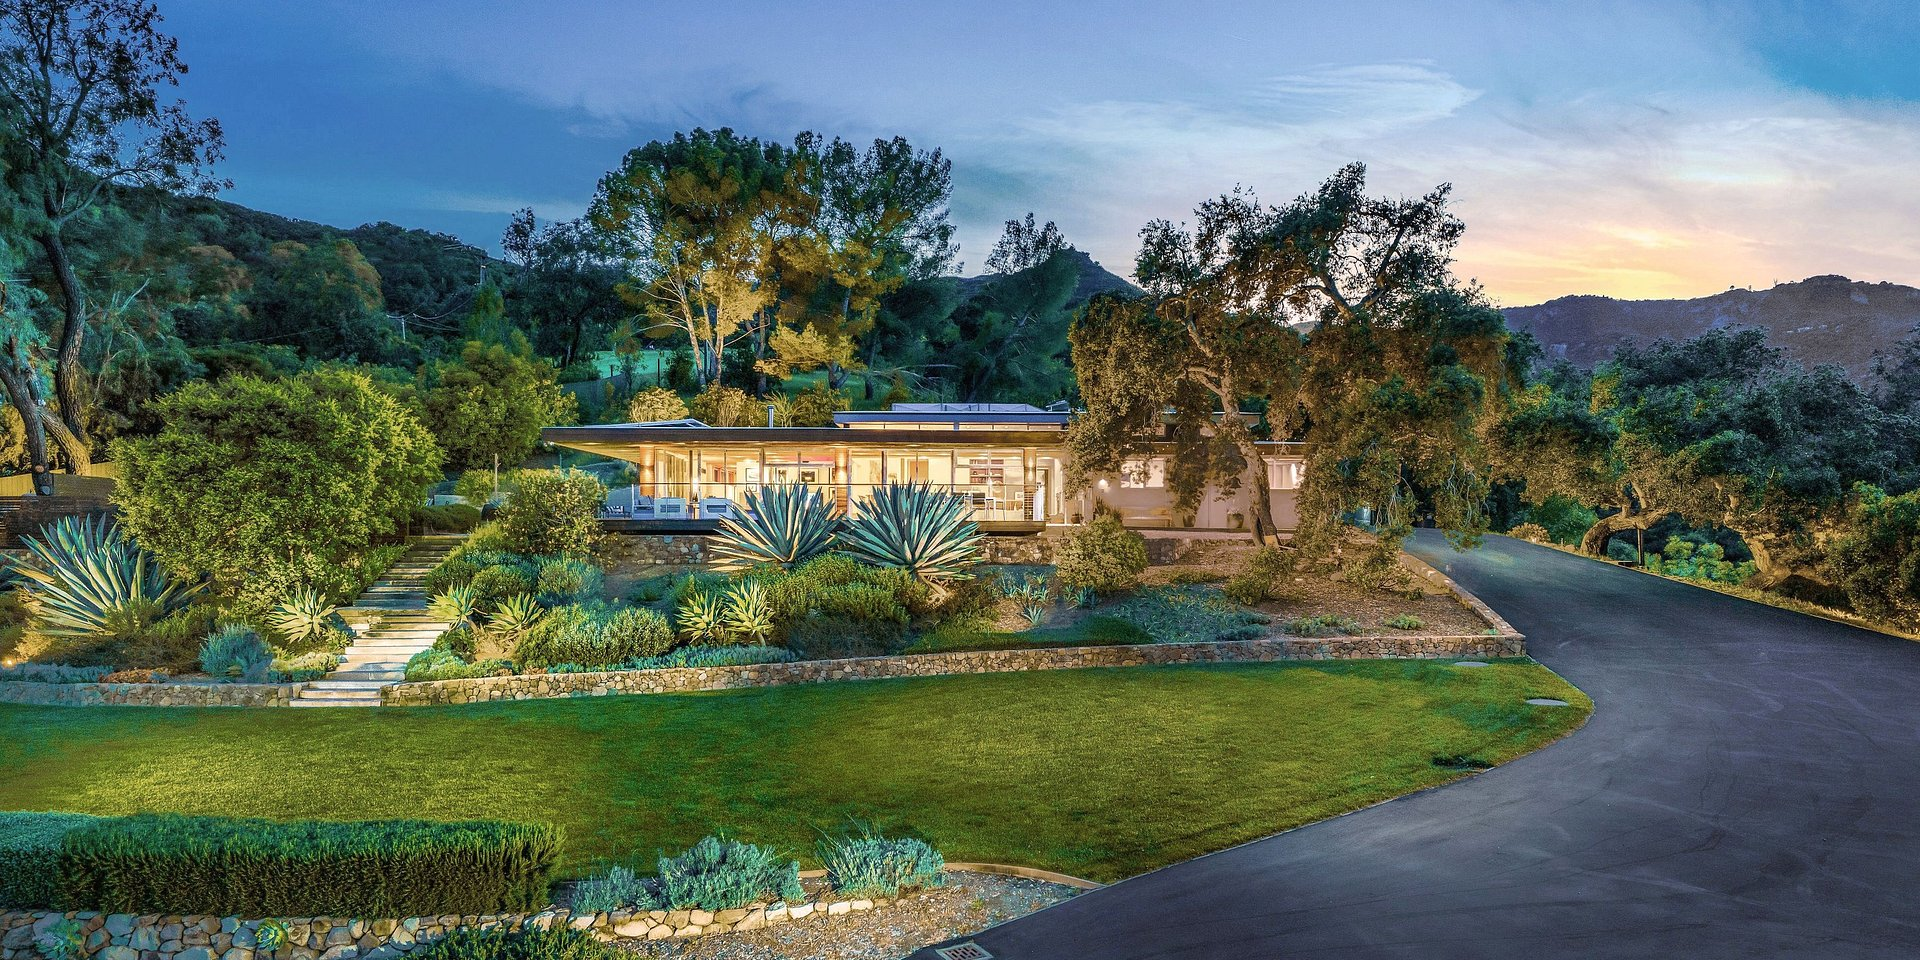 Coldwell Banker Residential Brokerage Lists Topanga Property Owned by an American Actor for $4.8 Million